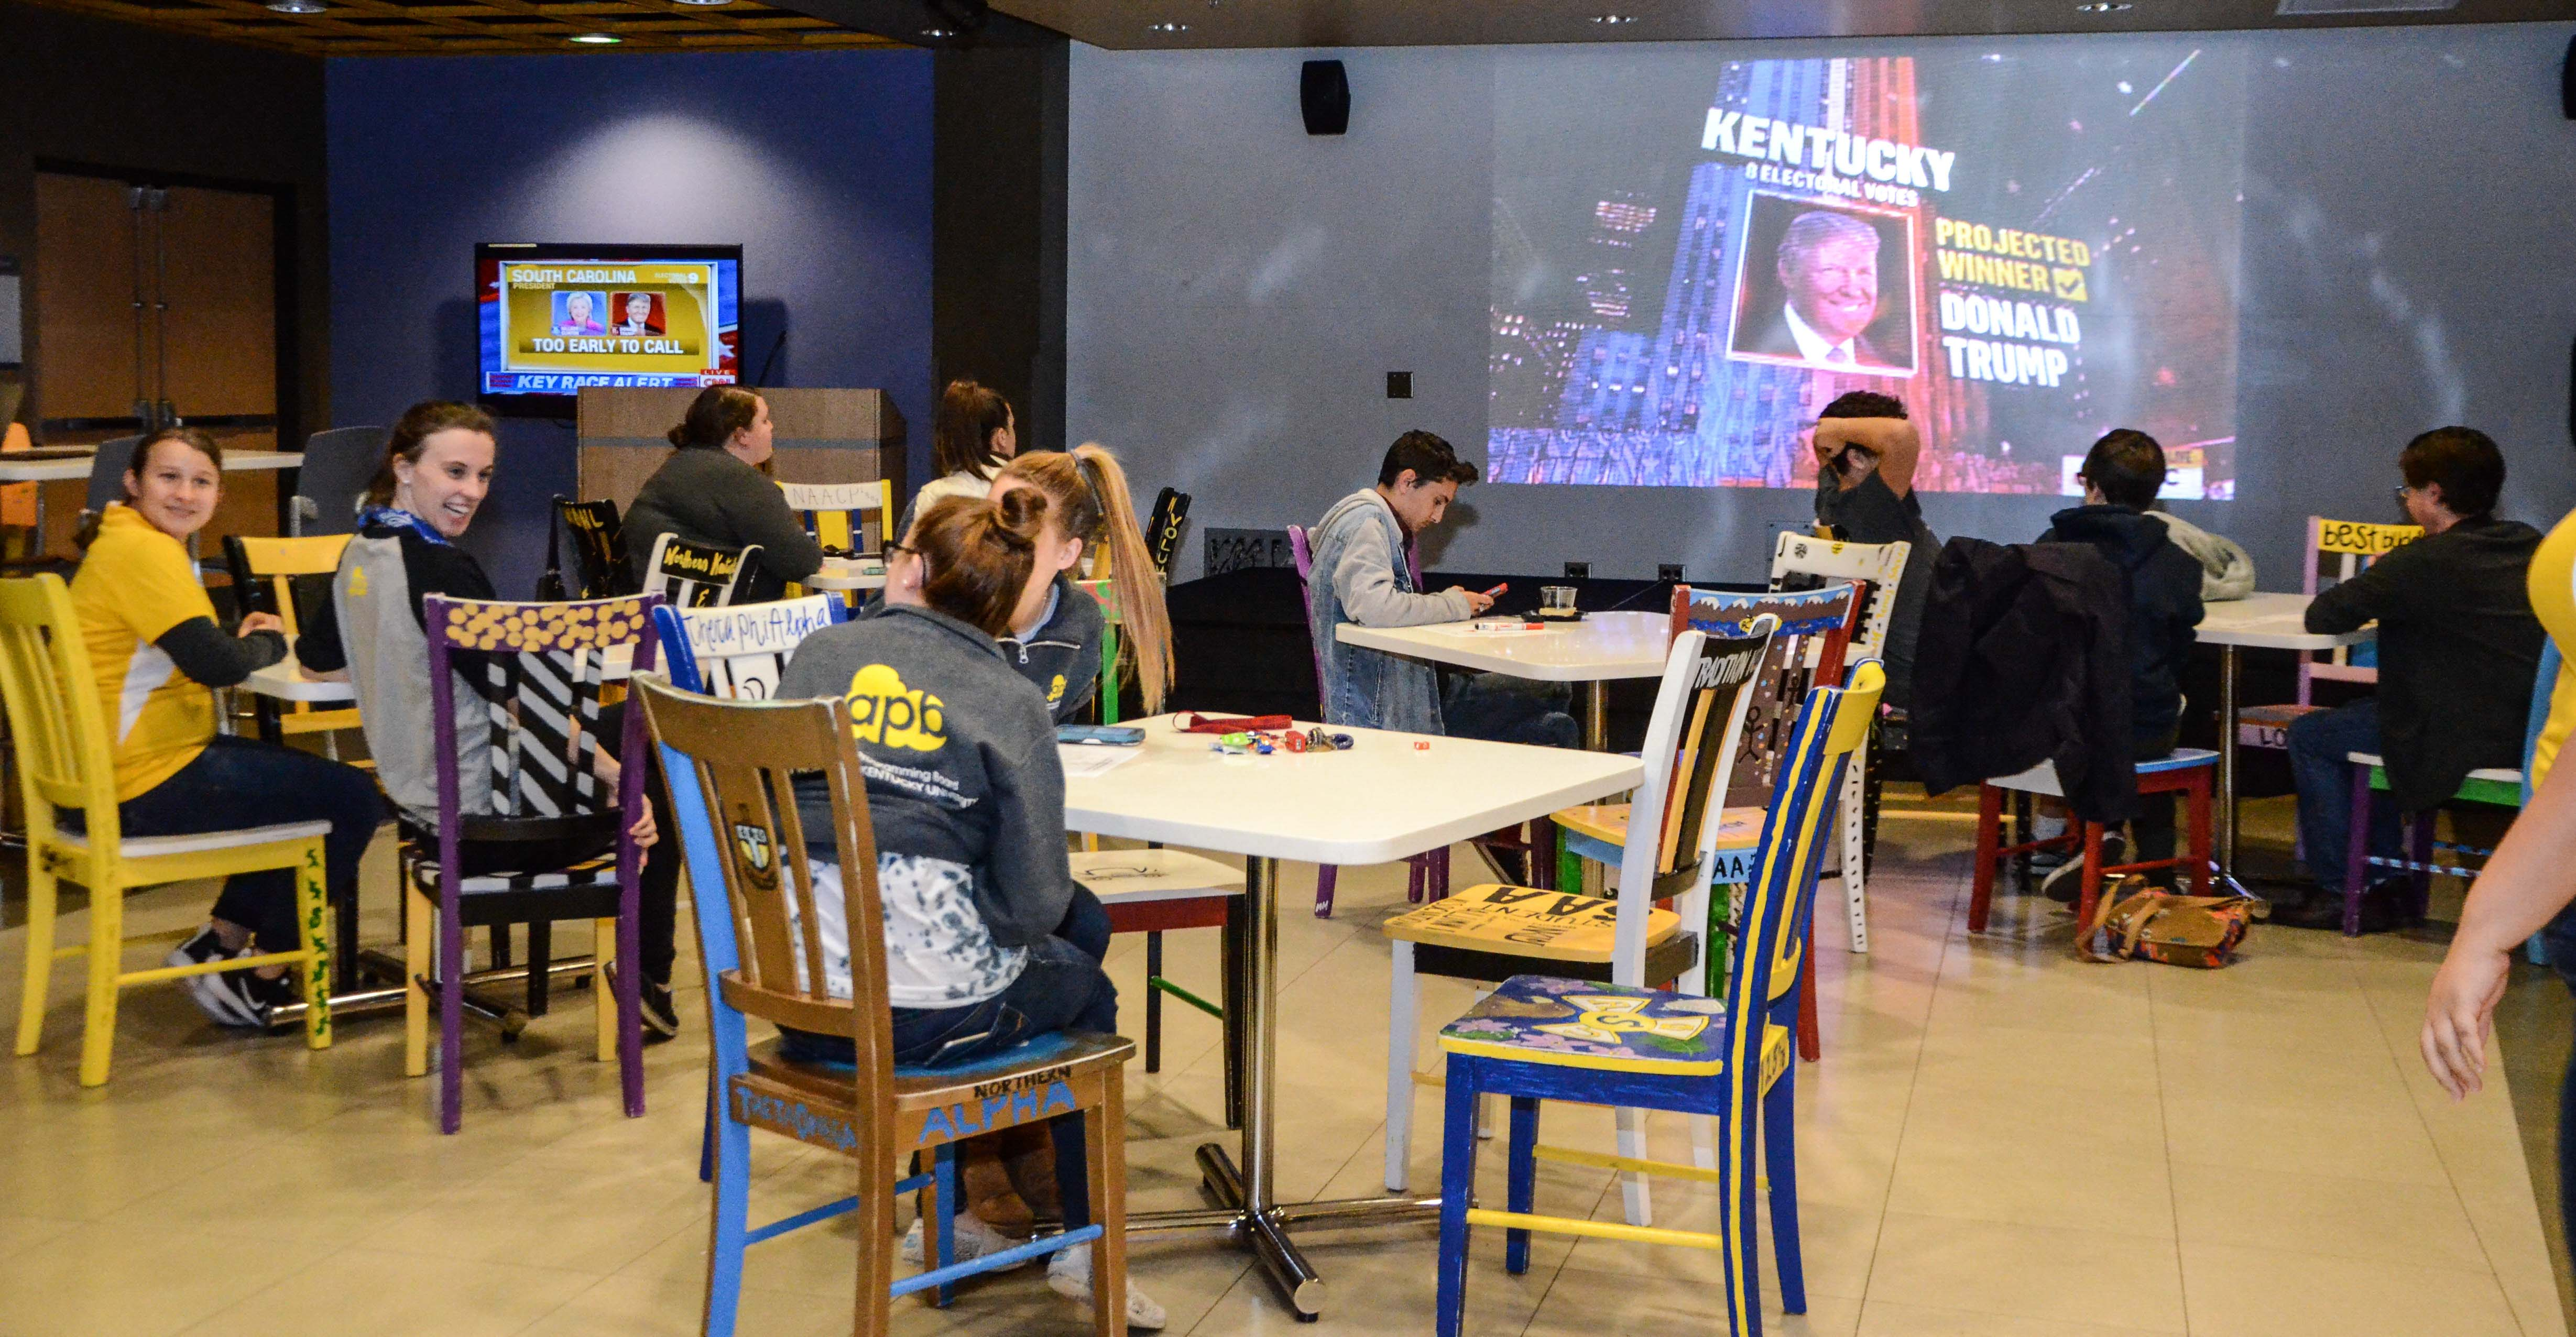 NKU+students+watch+election+returns+at+the+APB+watch+party+in+the+student+union.